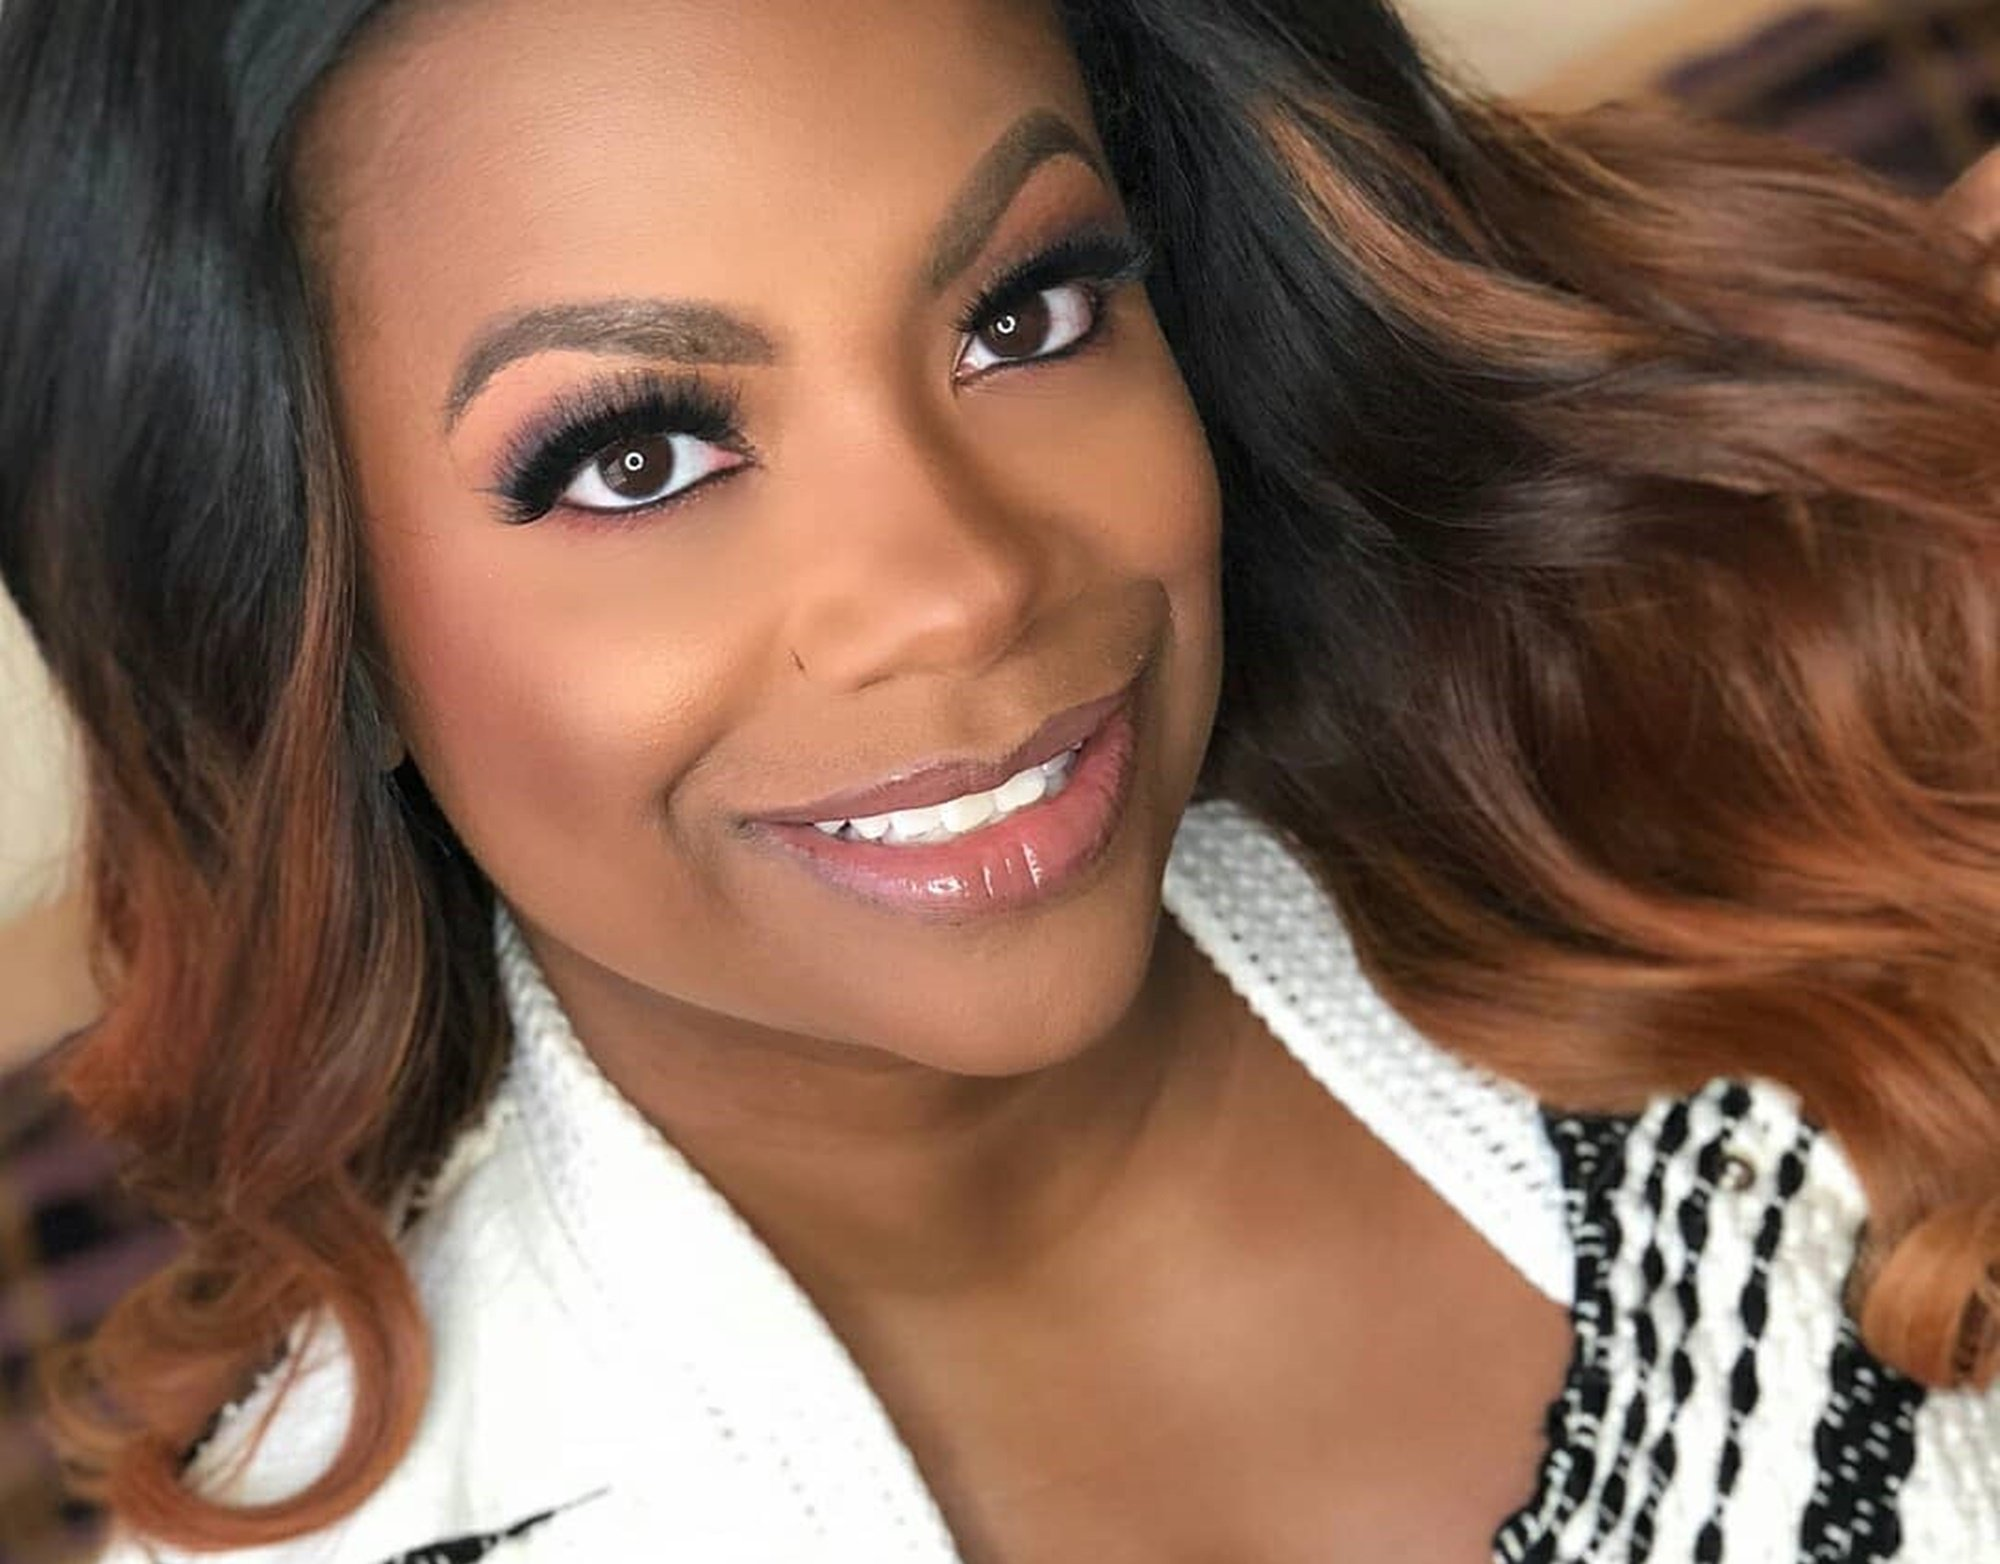 Kandi Burruss Shares Gorgeous Pics With Her Family For Christmas - See Them Here